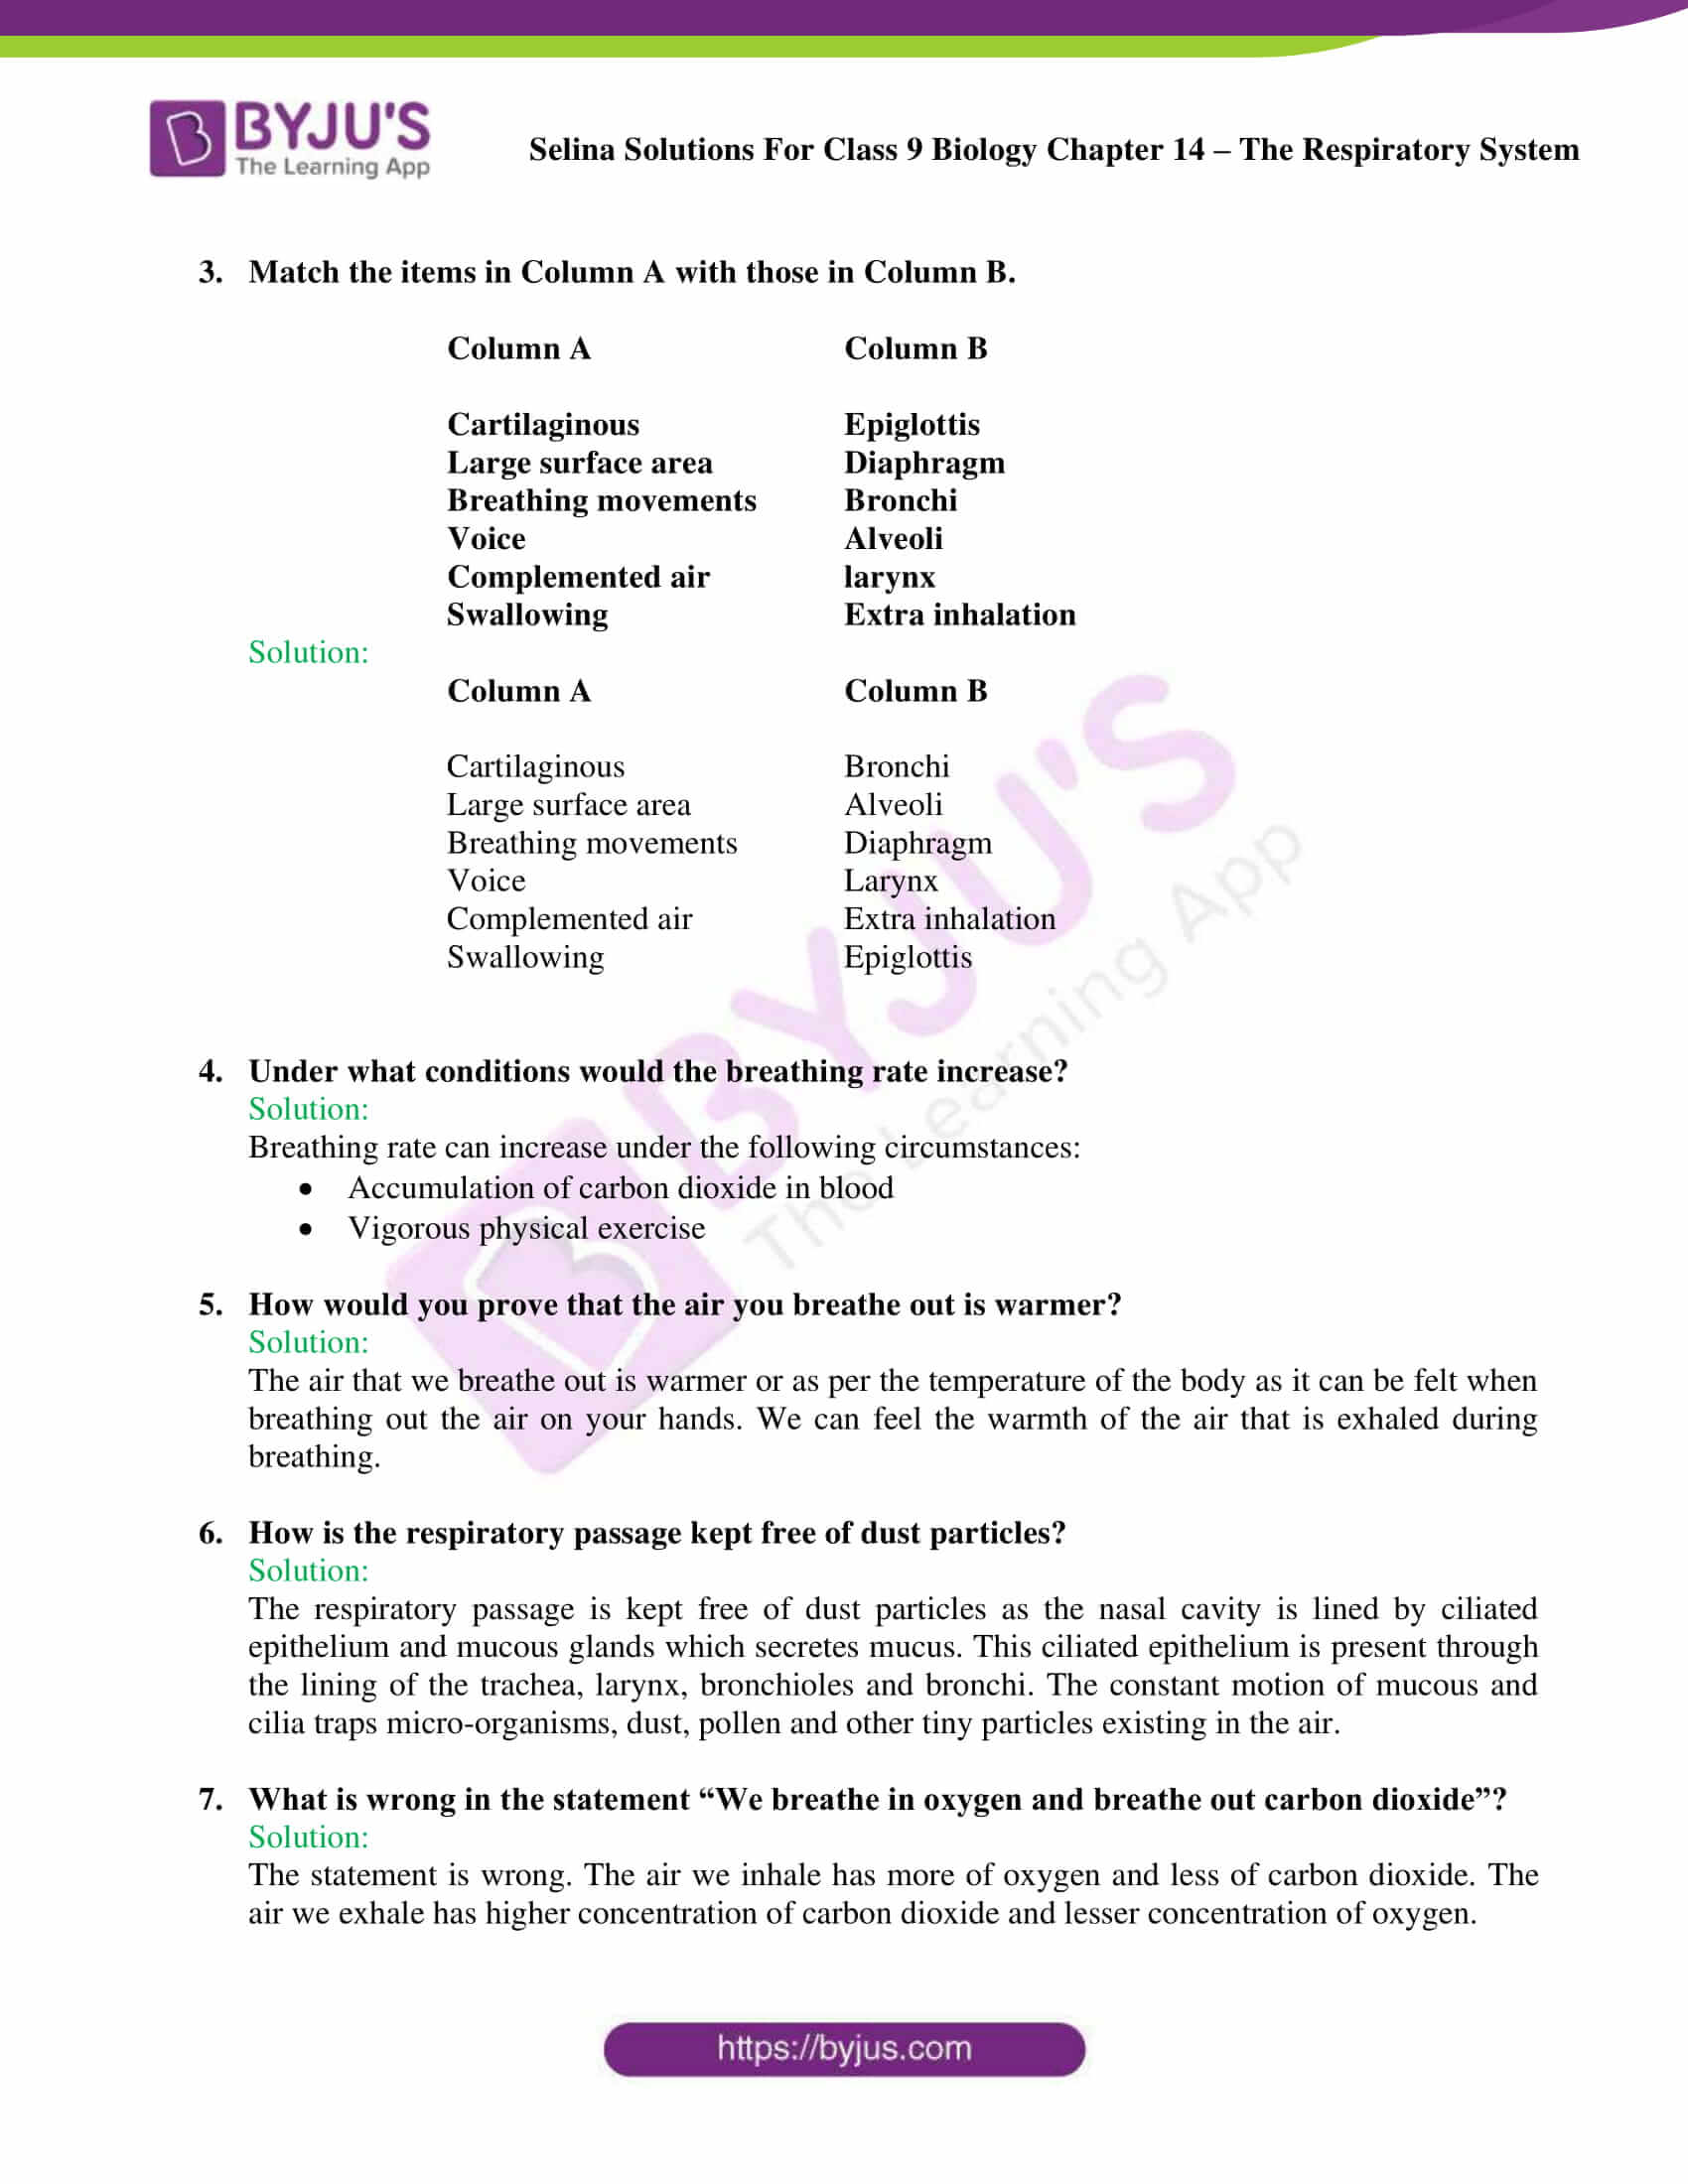 Selina Solutions Class 9 Biology Chapter 14 part 09